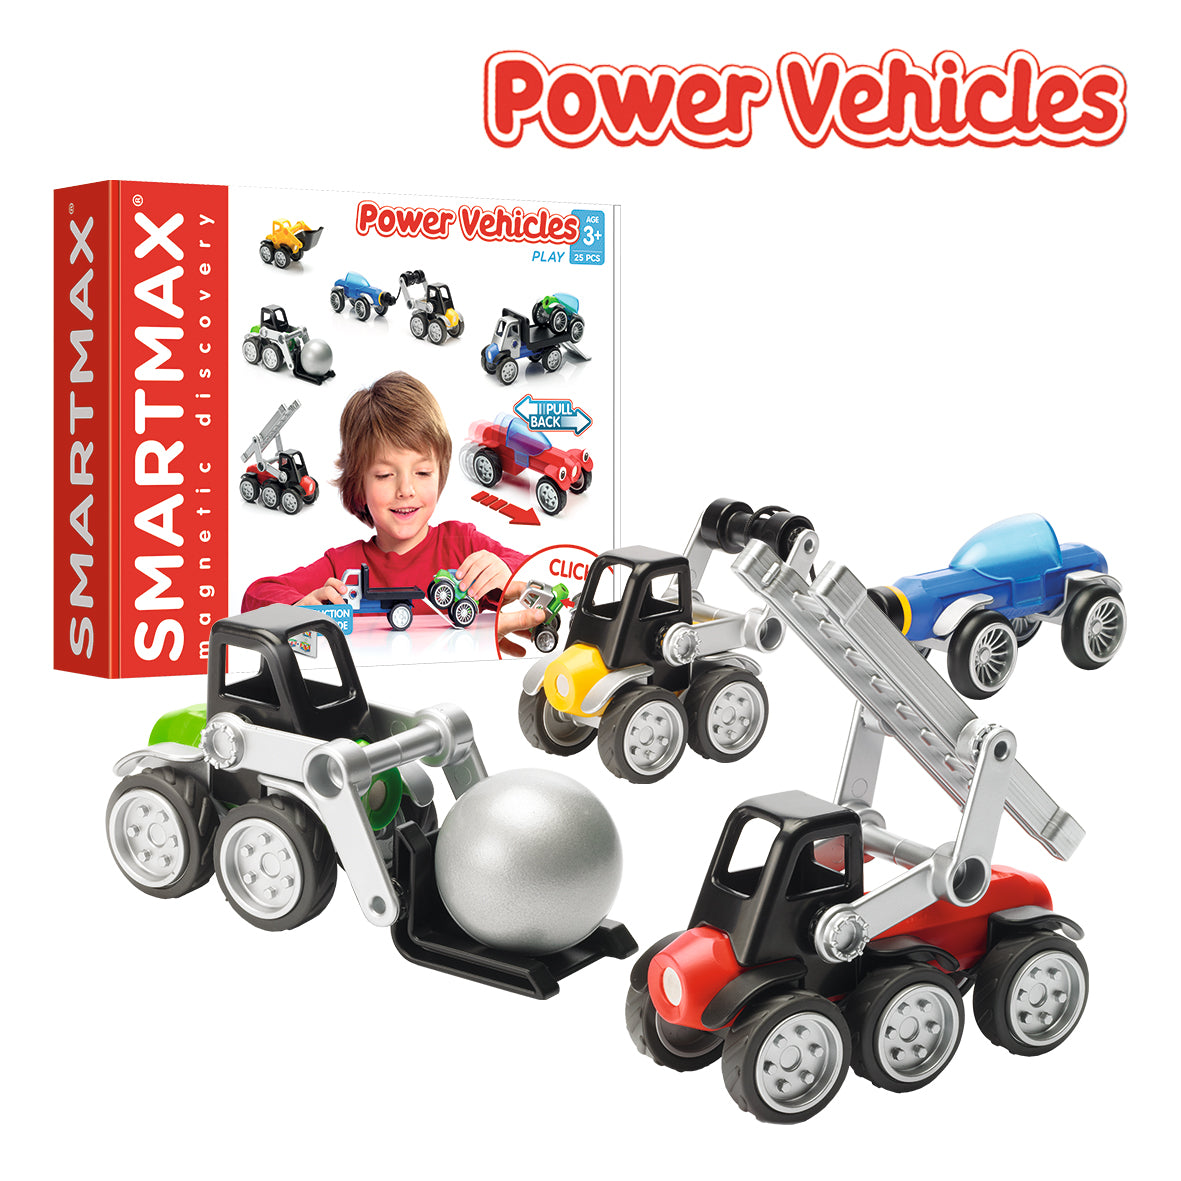 Power vehicles